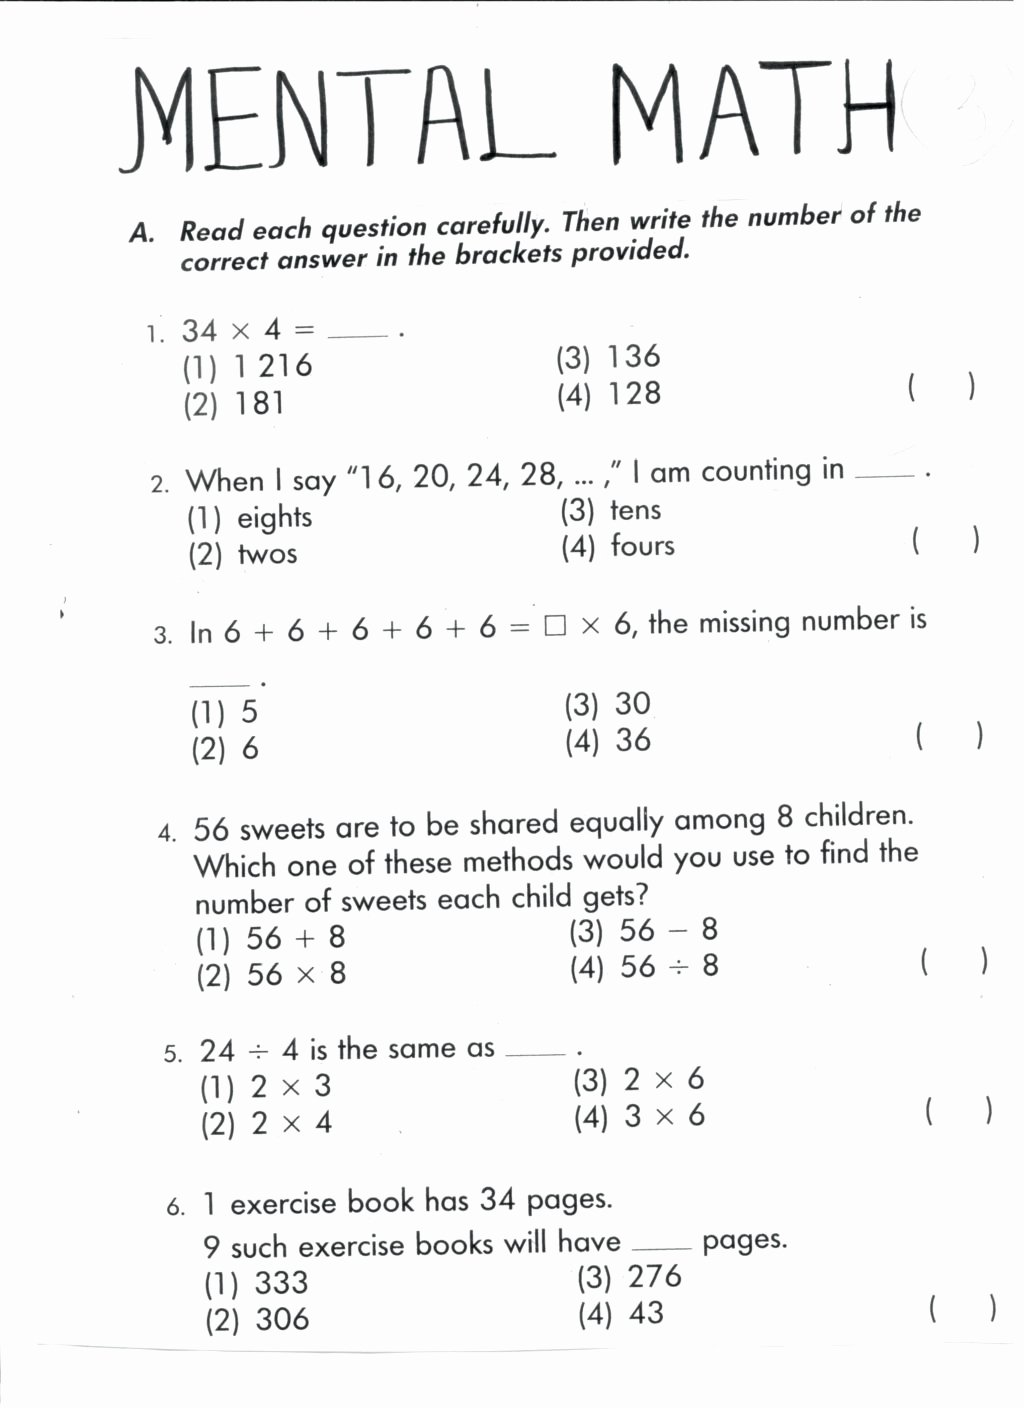 Mental Math Worksheets Grade 3 Free Worksheet Marvelous Mental Math Worksheets Grade